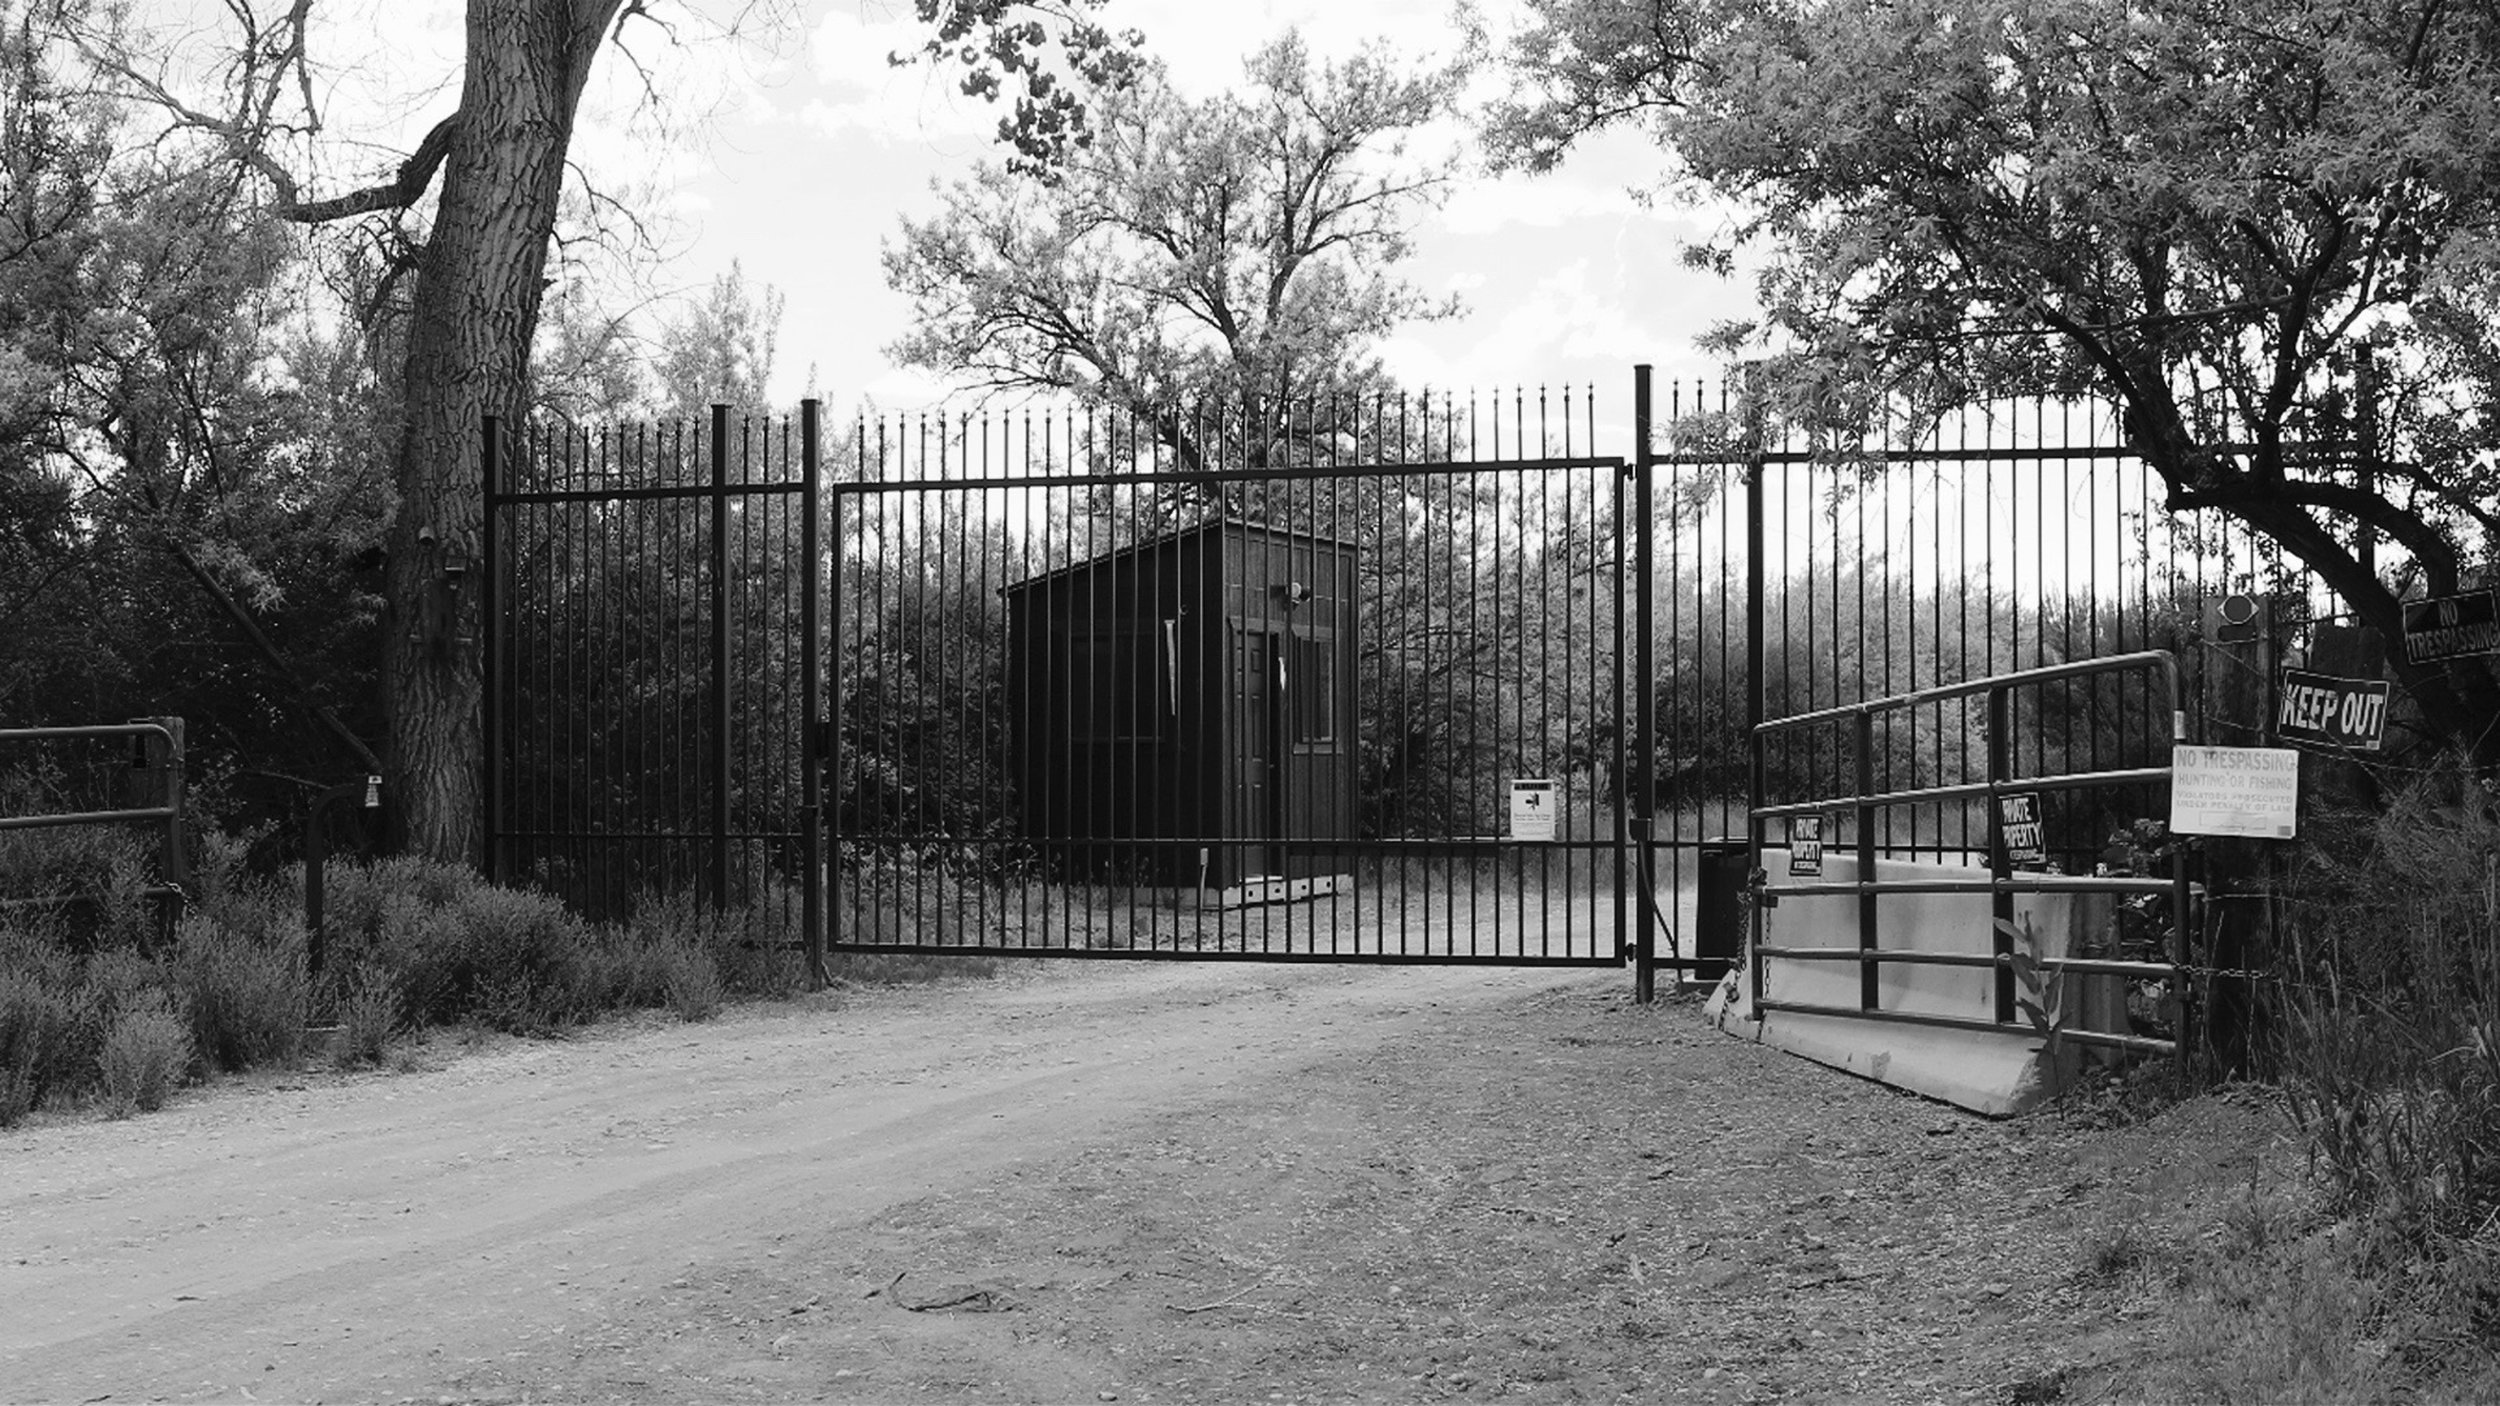 The new gate at Skinwalker Ranch